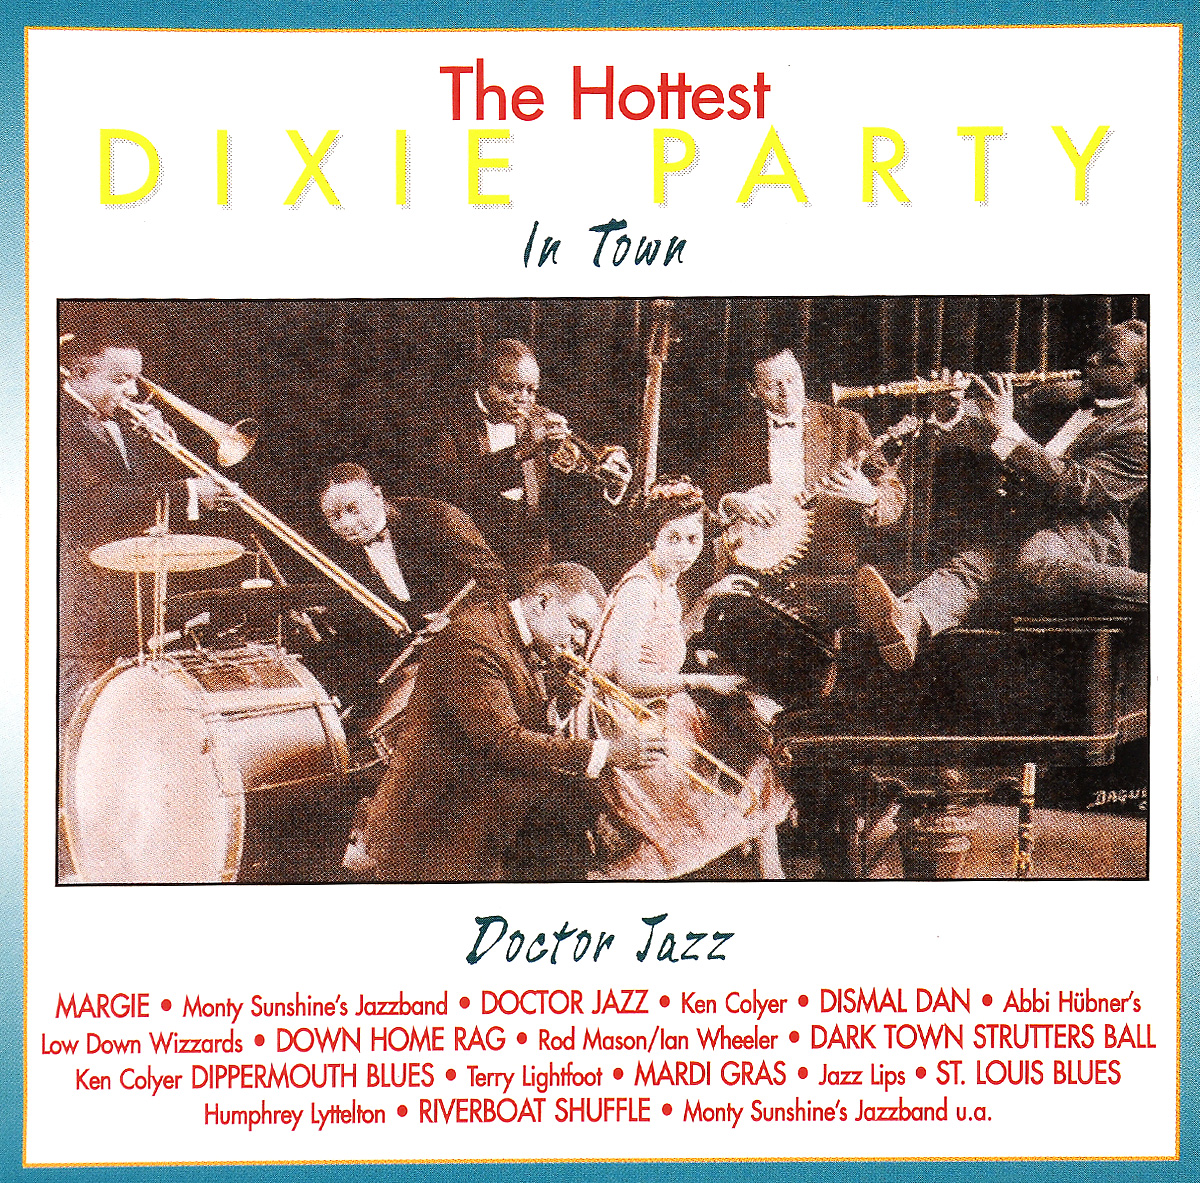 Кен Колайер,Rod Mason,Ian Wheeler,Jailhouse Jazzmen,Терри Лайтфут,Jazz Lips,Хамфри Литтлтон,The Hot Shots,Dreamland Orchestra,Crane River Jazzband The Hottest Dixie Party In Town. Doctor Jazz ken colyer s jazzmen кен колайер ken colyer s skiffle group mr acker bilk